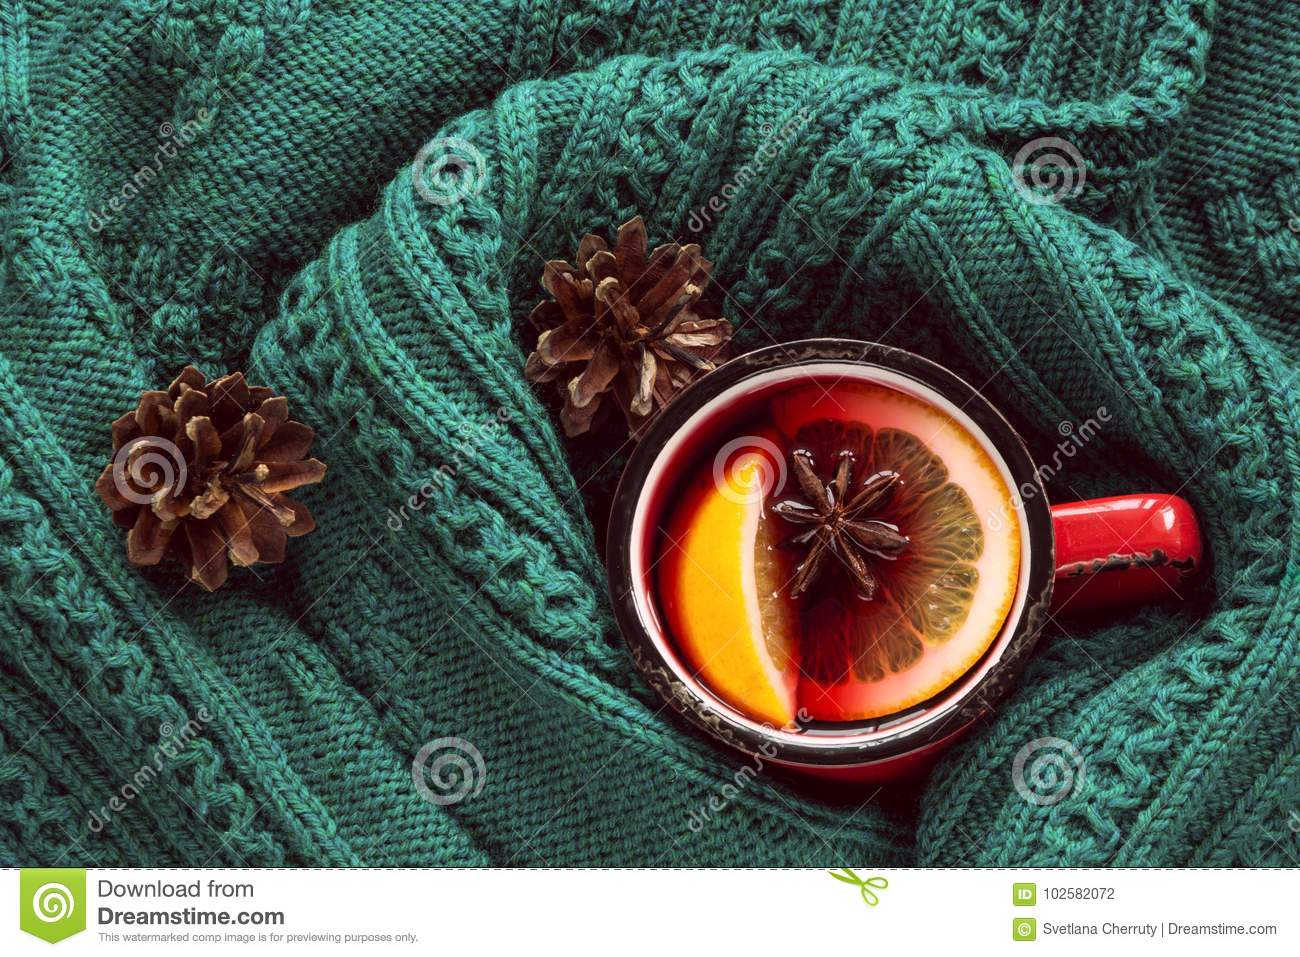 Christmas traditional hot mulled wine in red mug with spice wrapped in warm green sweater.